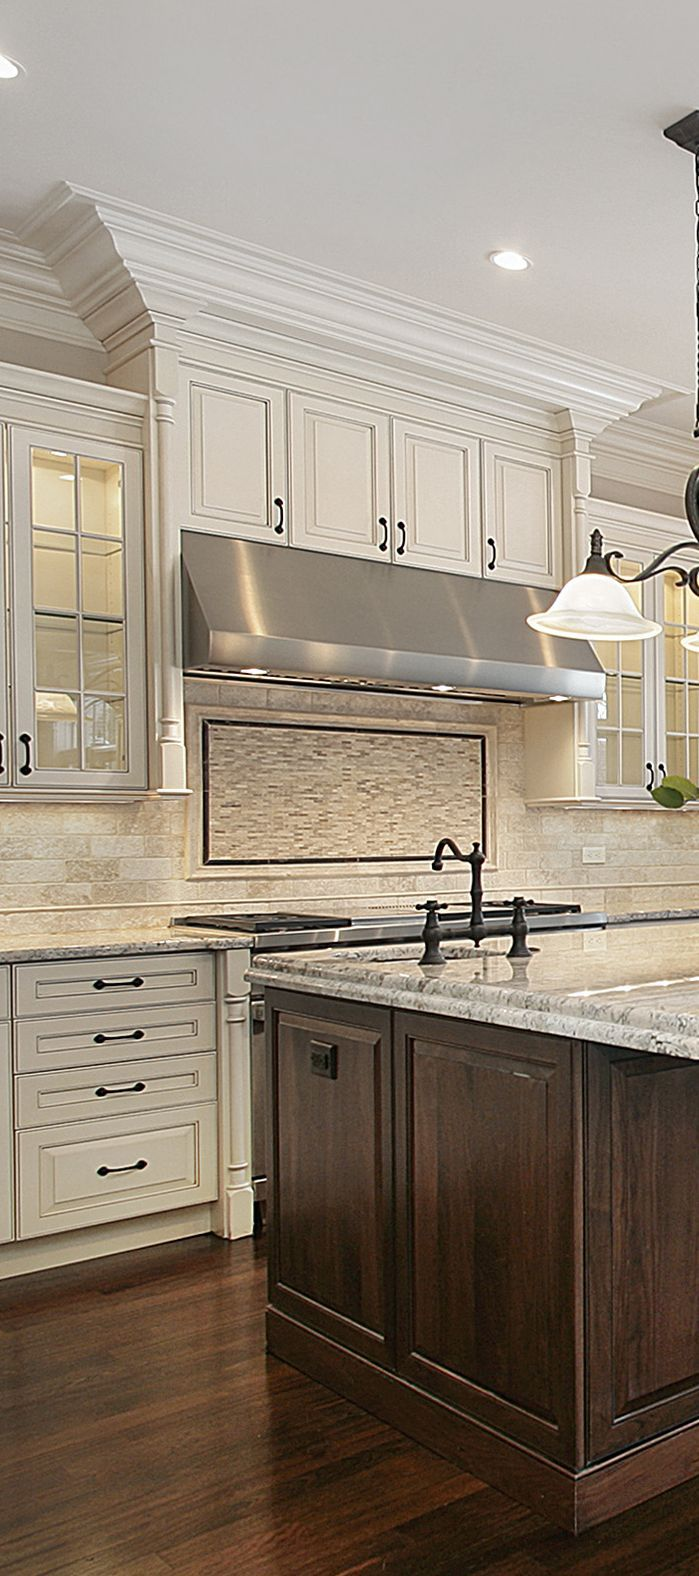 Kitchen flooring to go with white cabinets - Find This Pin And More On Kitchens